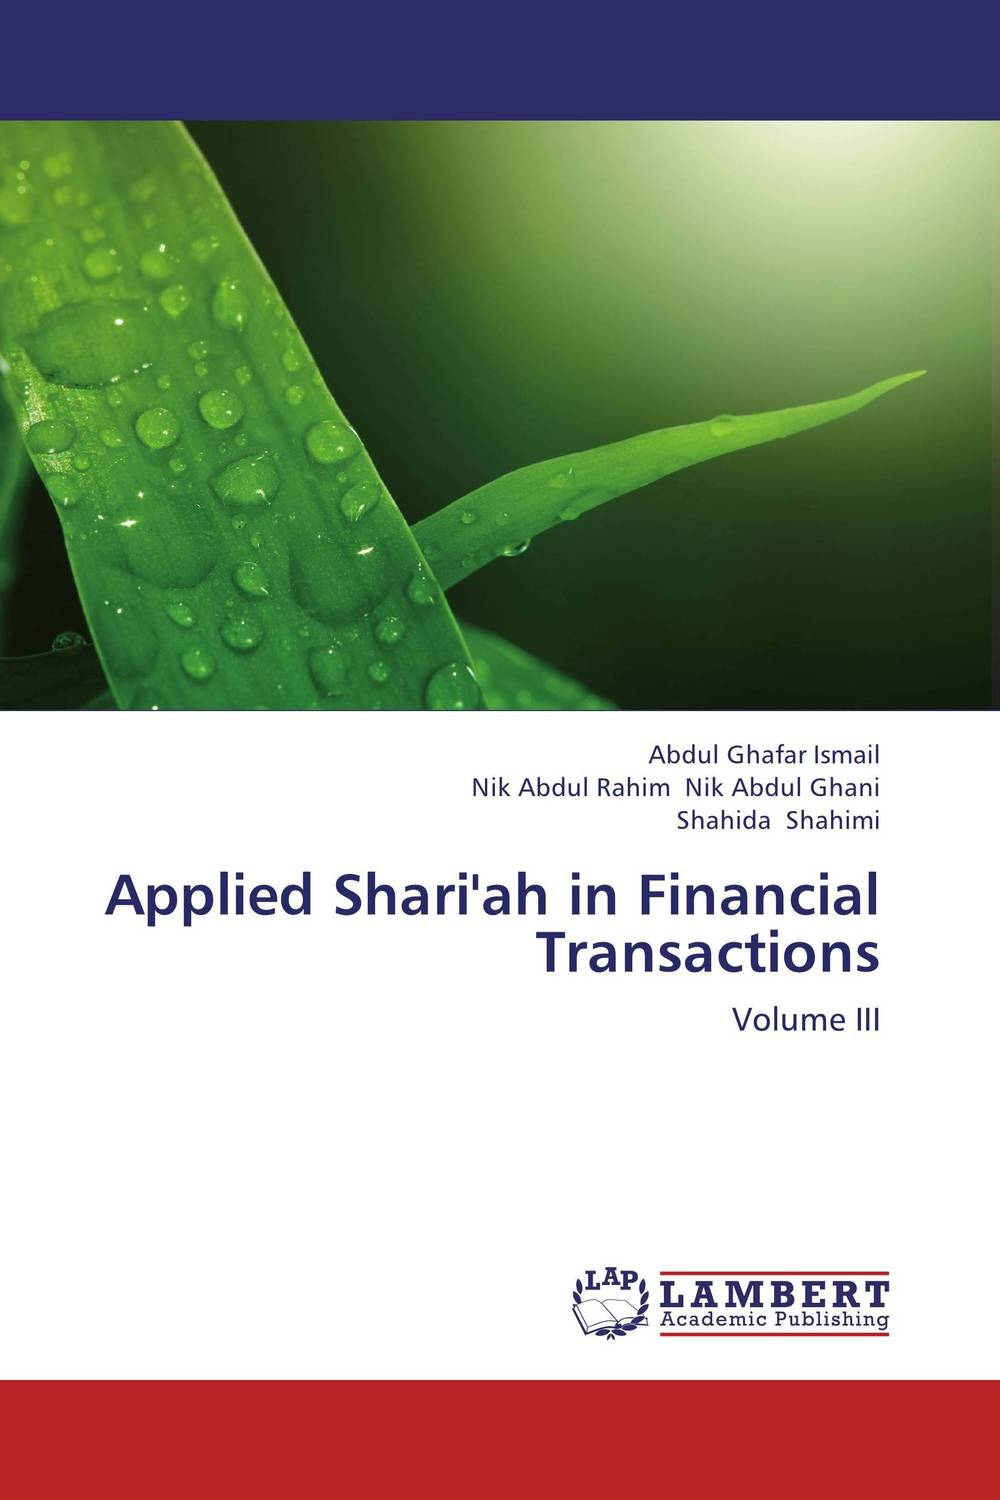 Applied Shari'ah in Financial Transactions natalie schoon modern islamic banking products and processes in practice